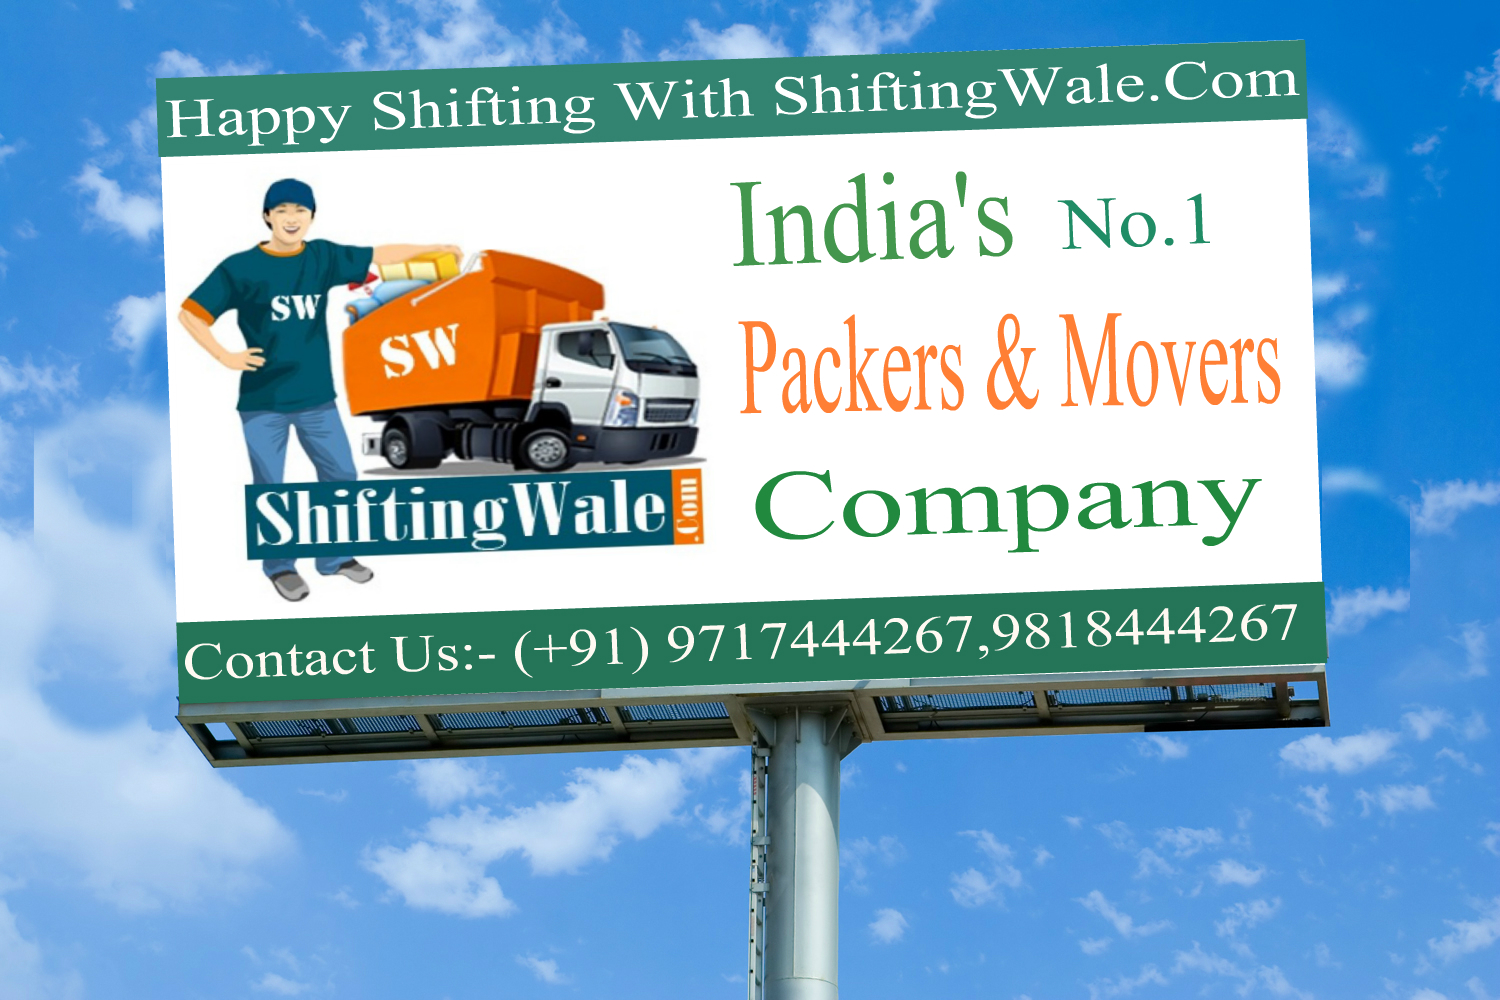 How We Can Find a Best Movers & Packers in Bangalore Hyderabad Chennai to New Delhi Gurgaon Greater Noida Ghaziabad, We Want to Move Our Household Goods and Car from Bangalore Hyderabad Chennai to New Delhi Gurgaon Greater Noida Ghaziabad